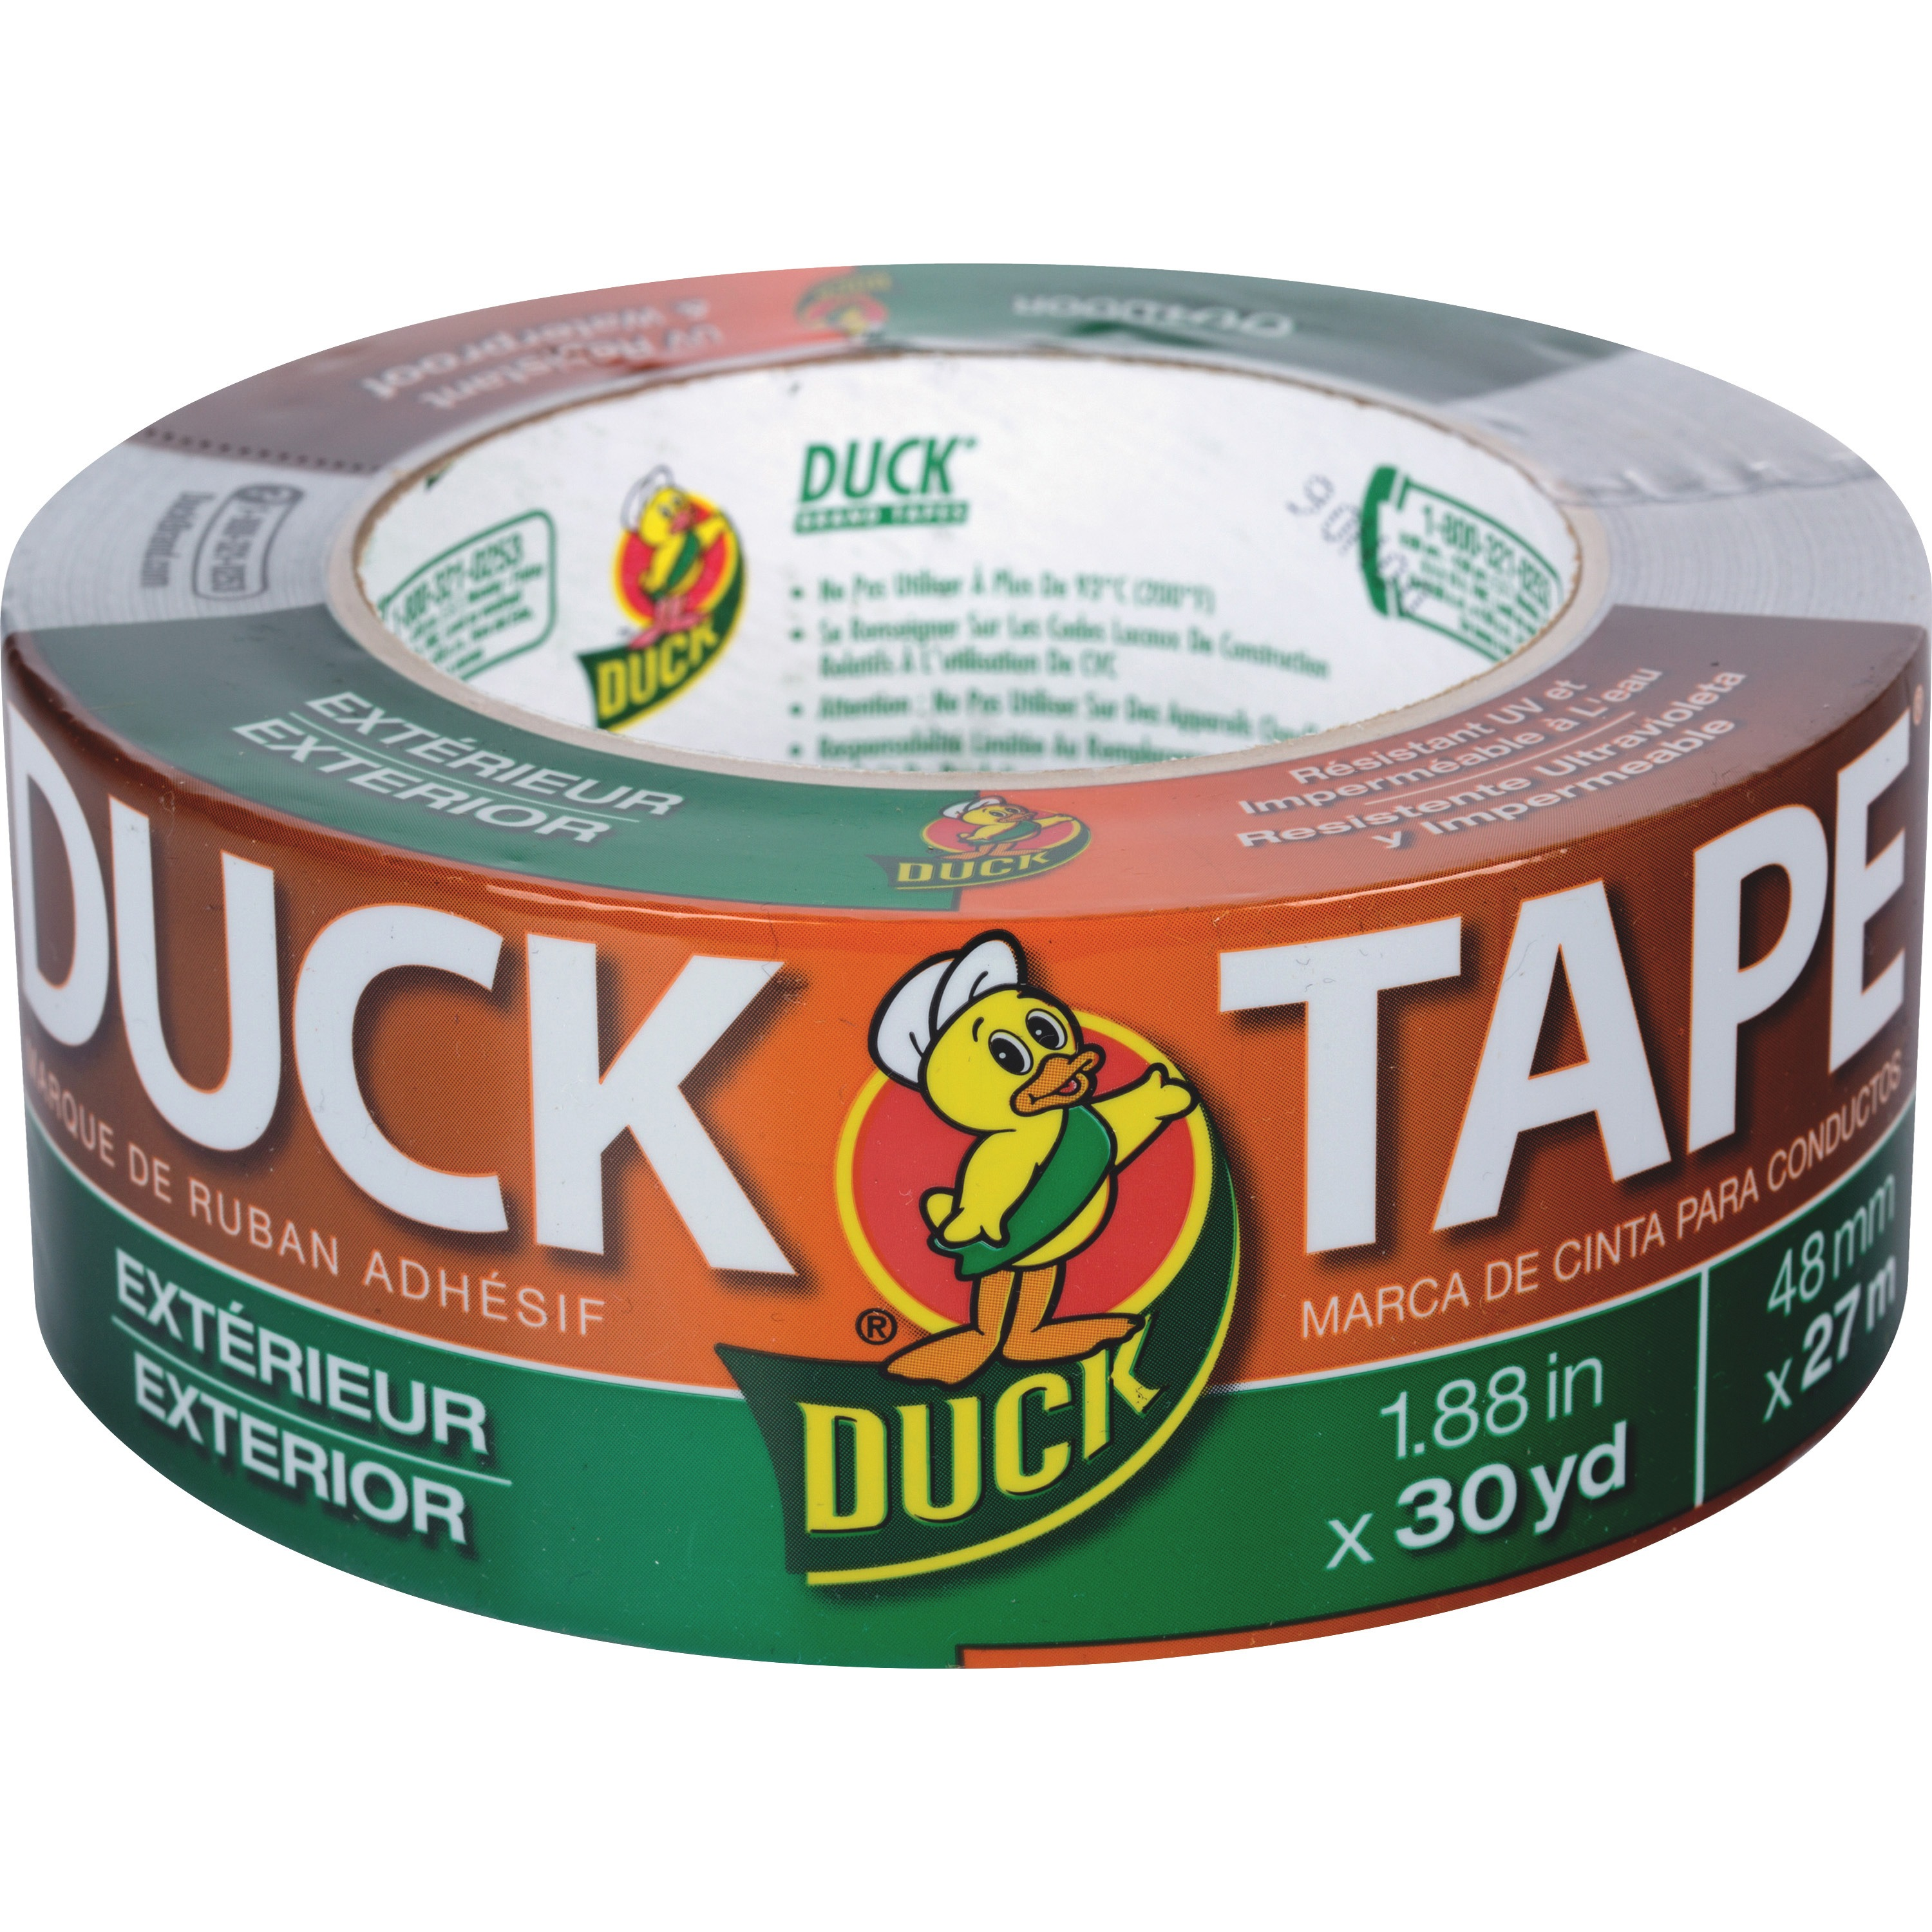 Duck Brand Brand Outdoor/Exterior Duct Tape, Gray, 1 / Roll (Quantity)